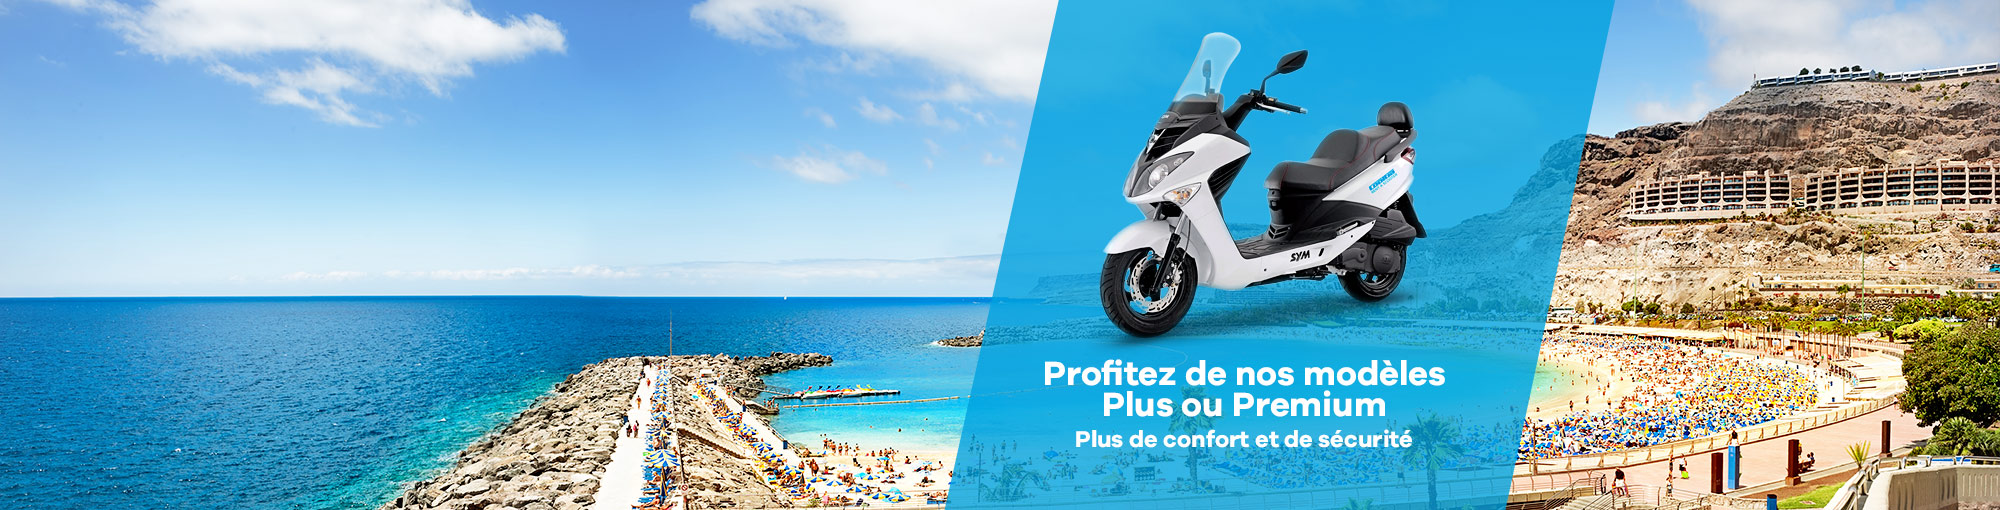 location de moto plus premium